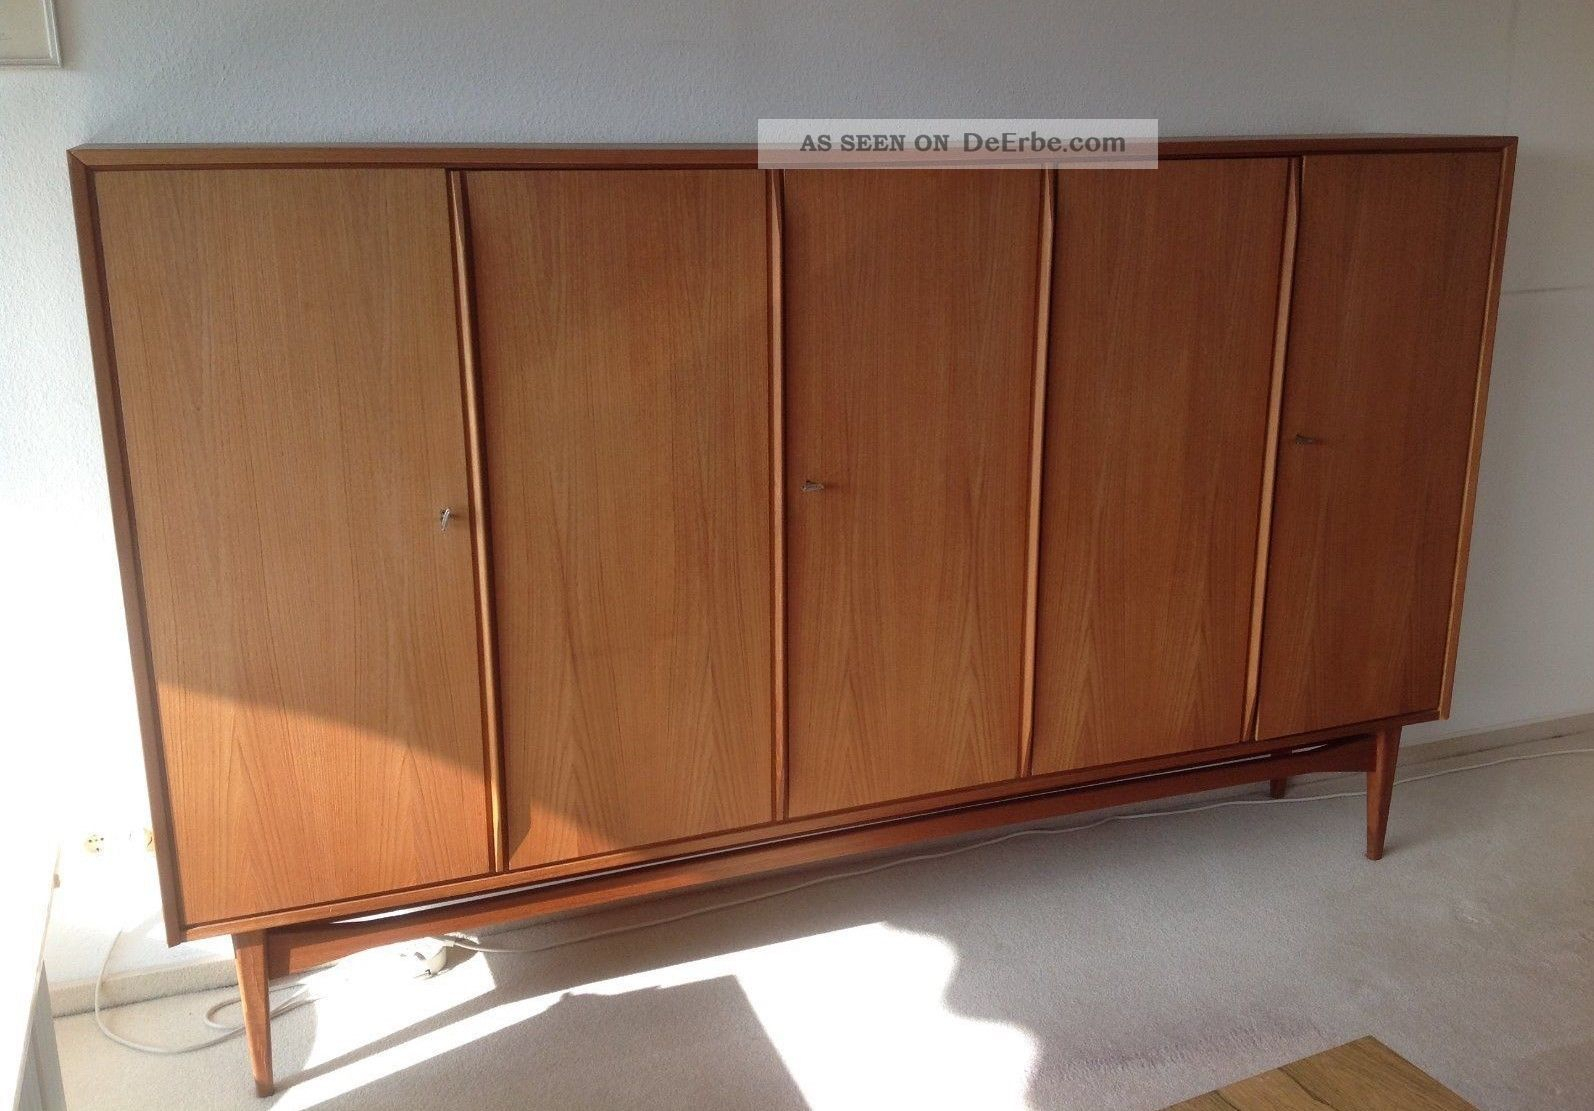 Vintage Teak Highboard / Sideboard / Wohnschrank 60Er Jahre pertaining to Mid-Century Brown And Grey Sideboards (Image 29 of 30)